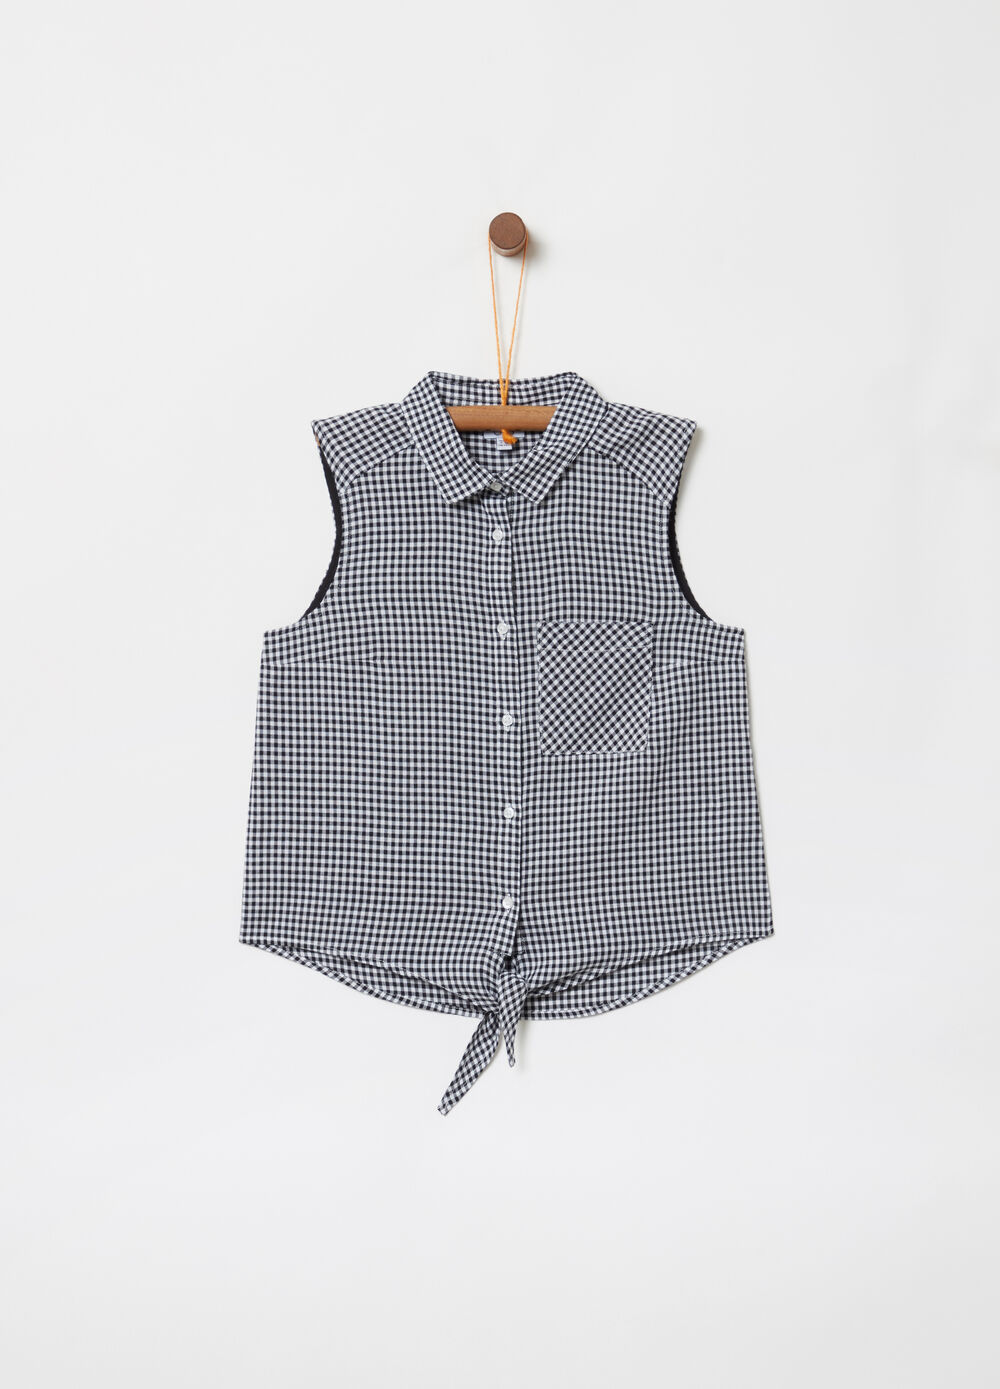 Sleeveless shirt with check knot